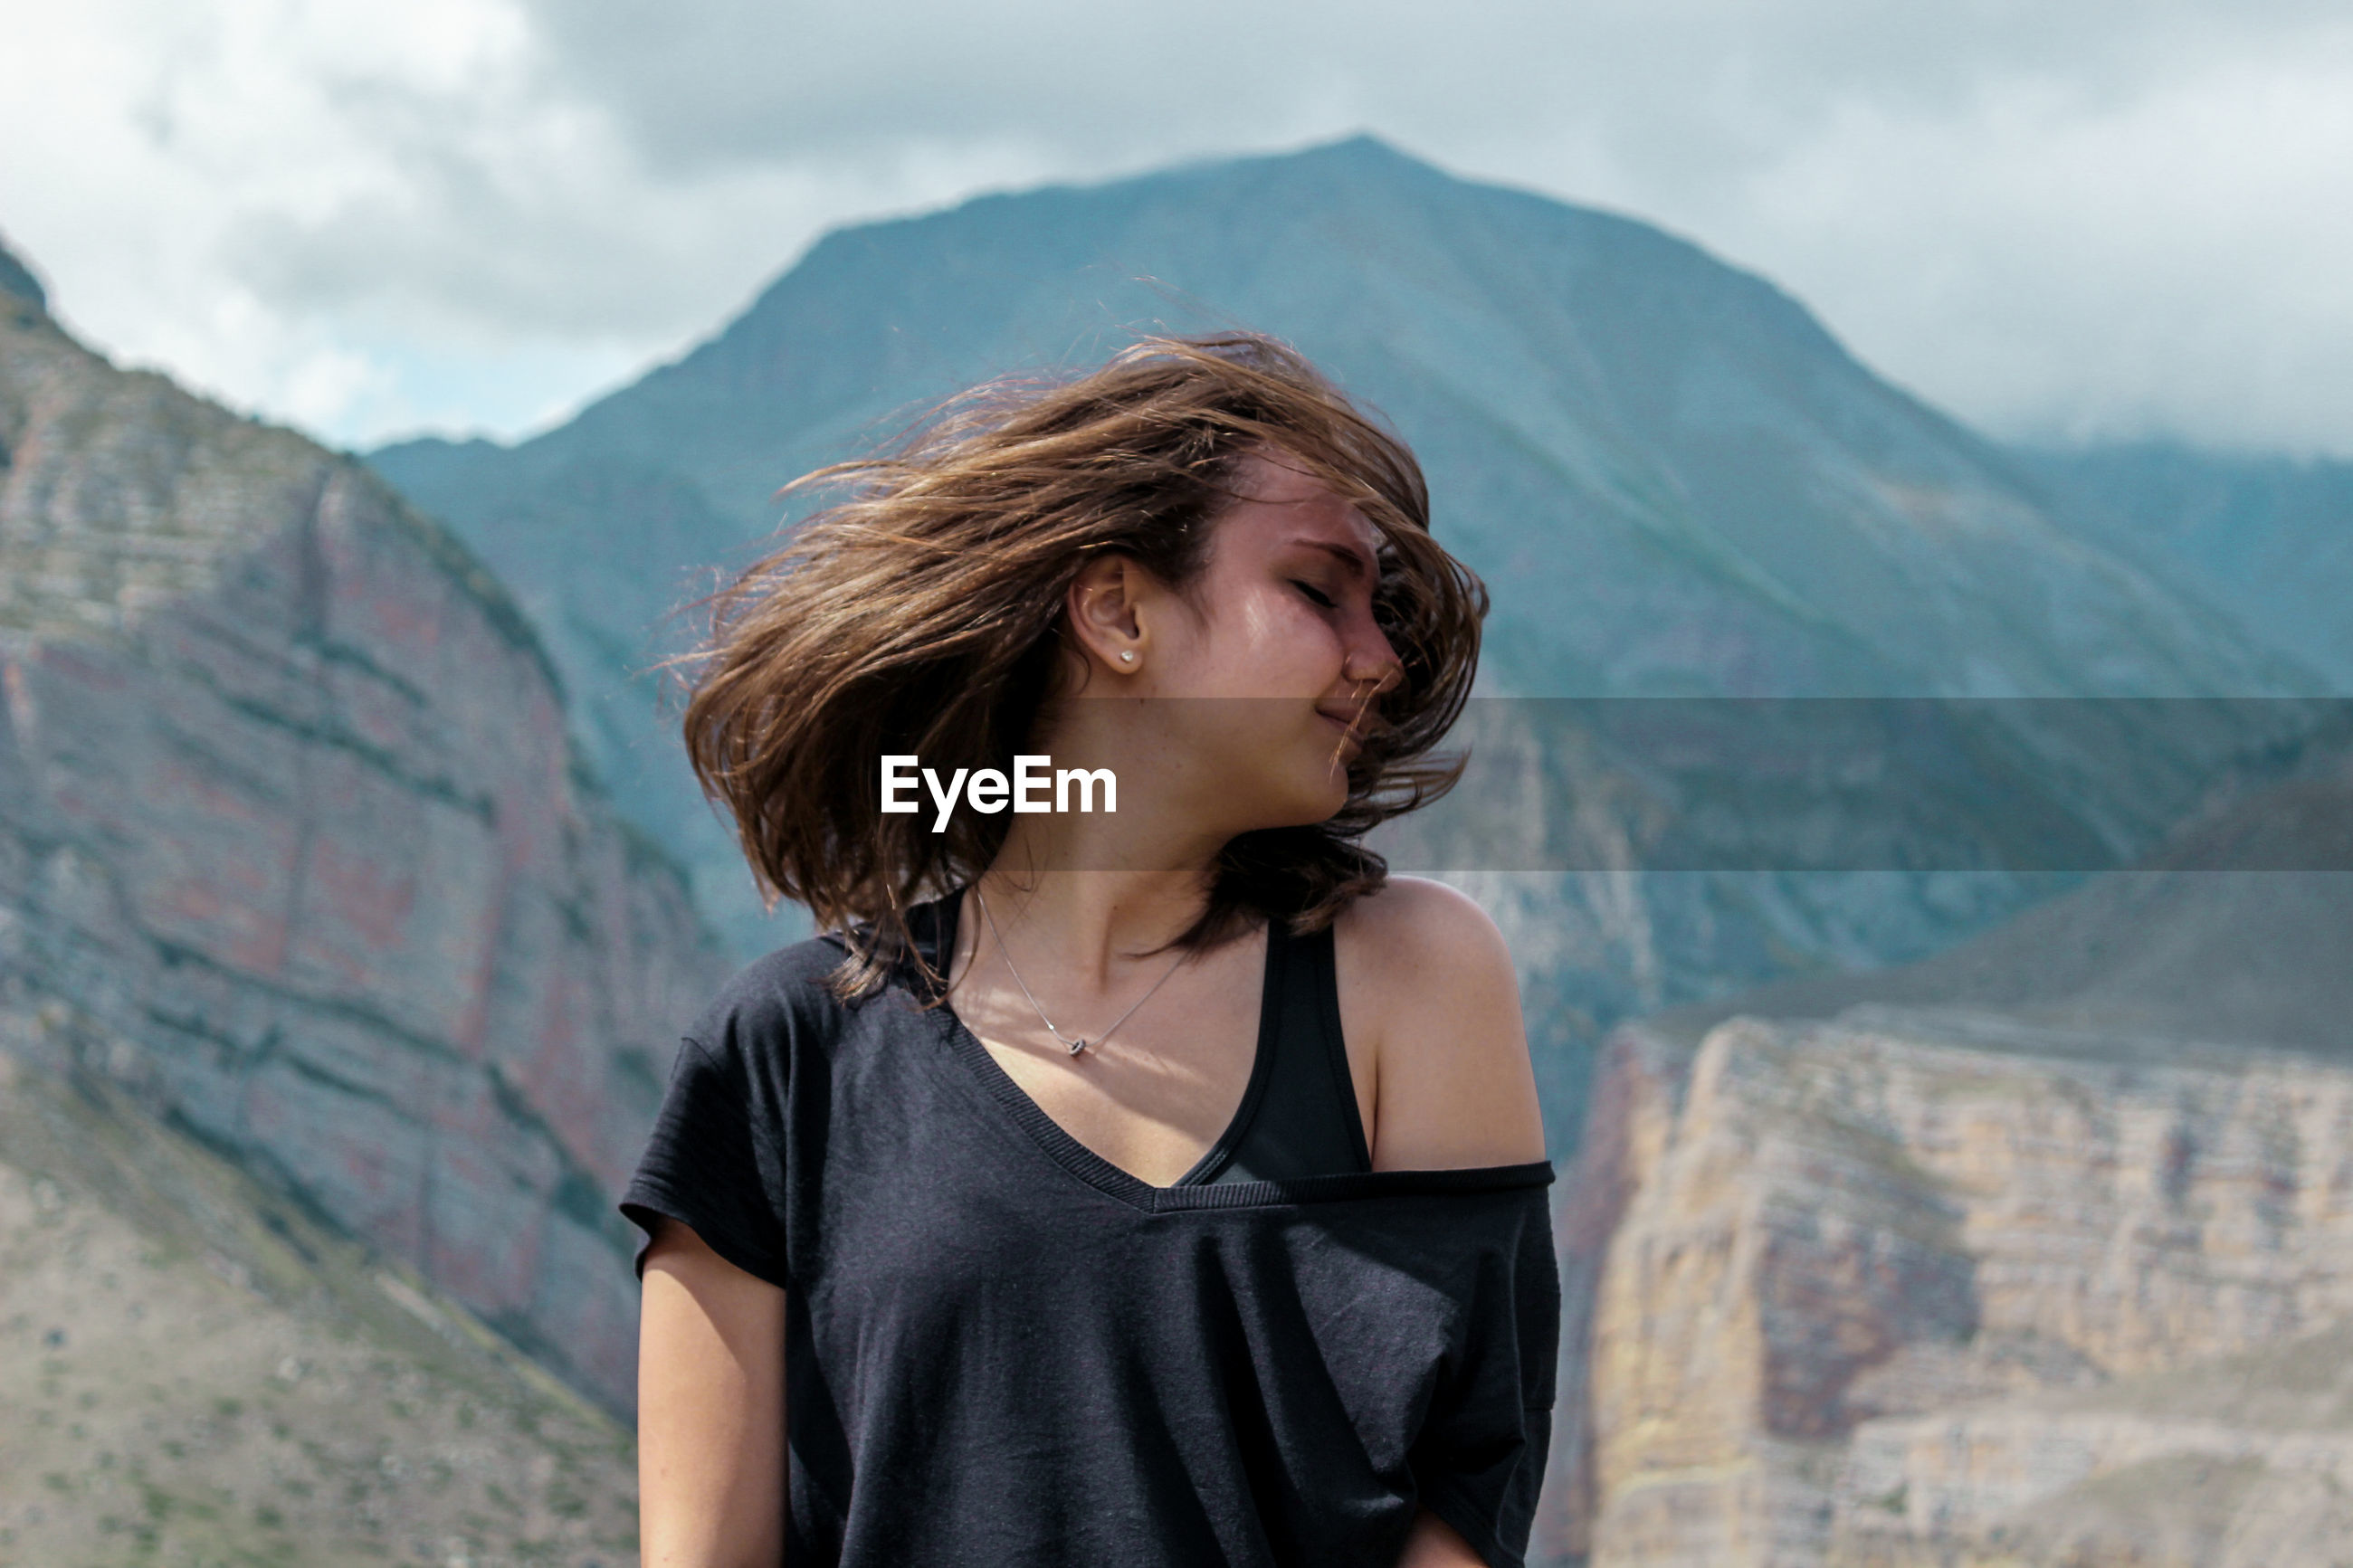 Young woman tossing her hair standing against mountain range